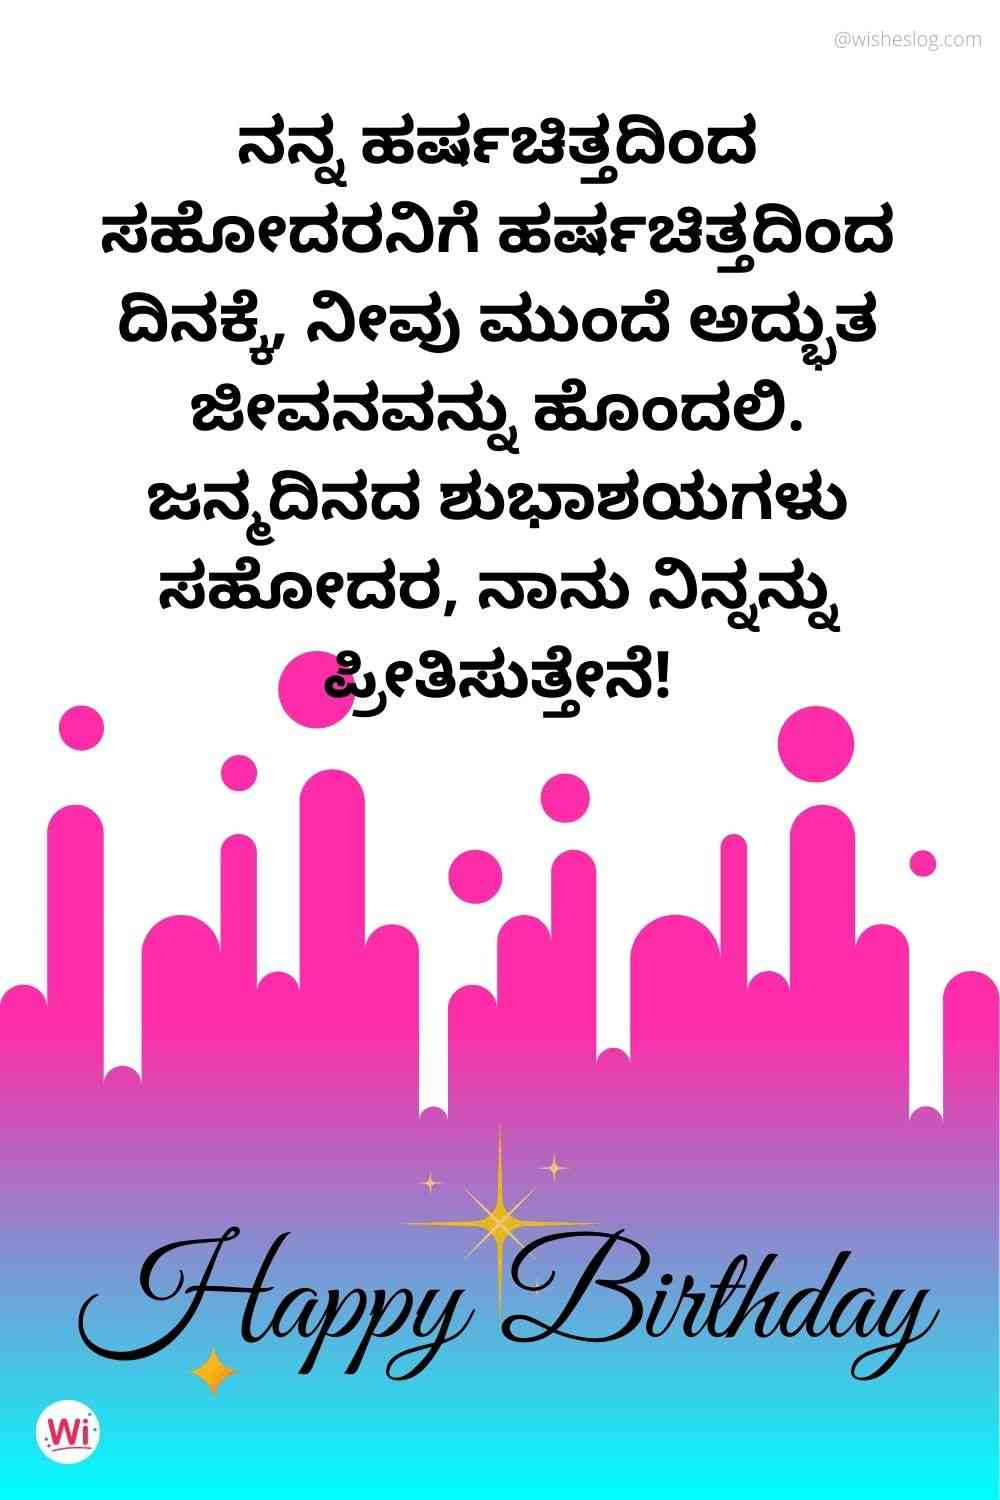 happy birthday brother wishes in kannada